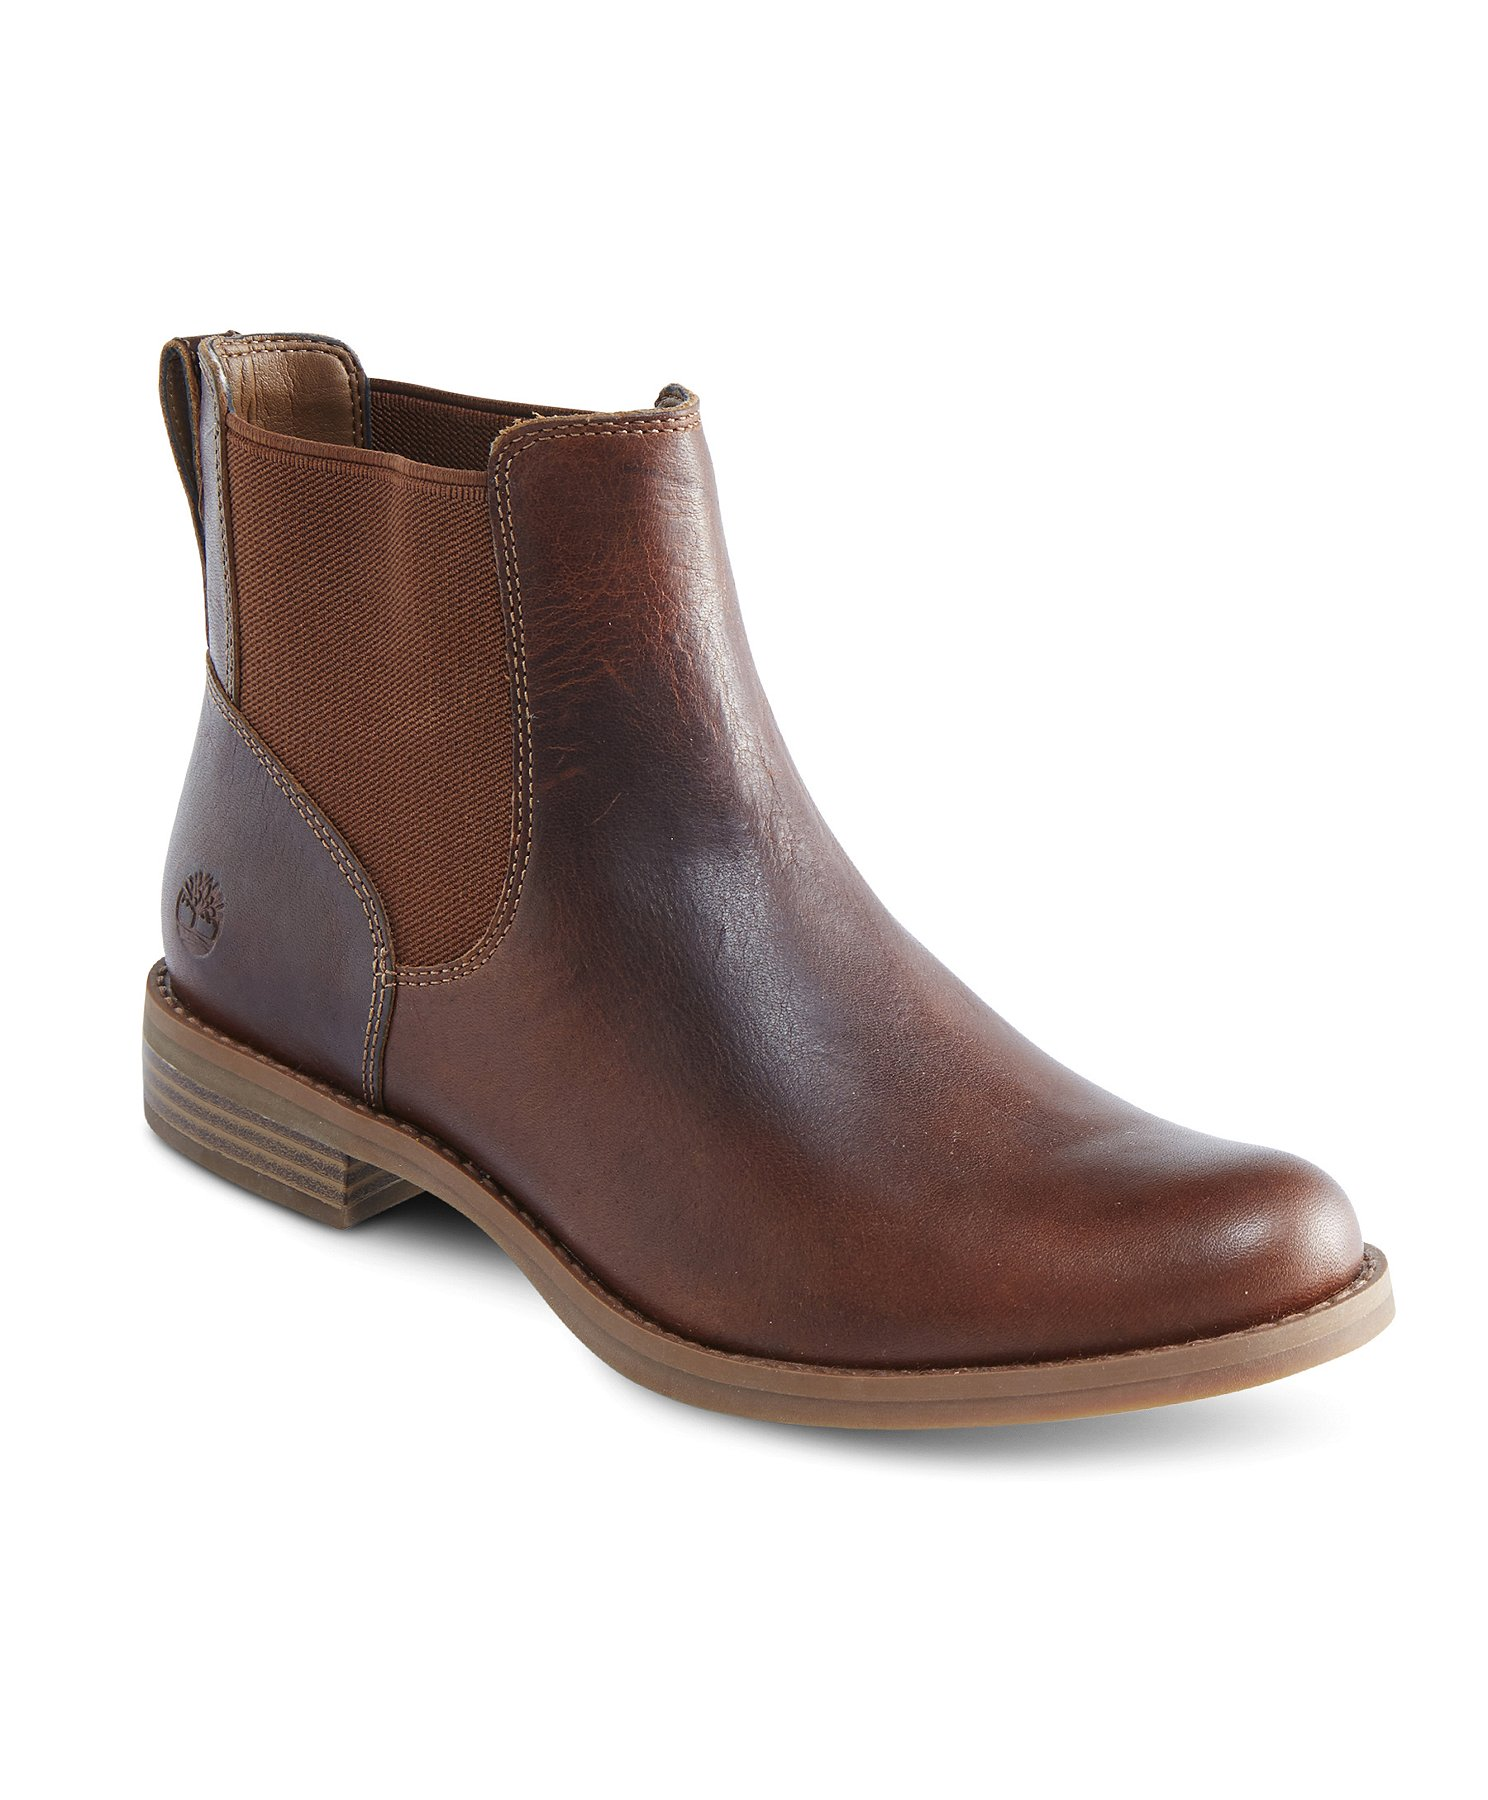 Women's Magby Low Chelsea Boots